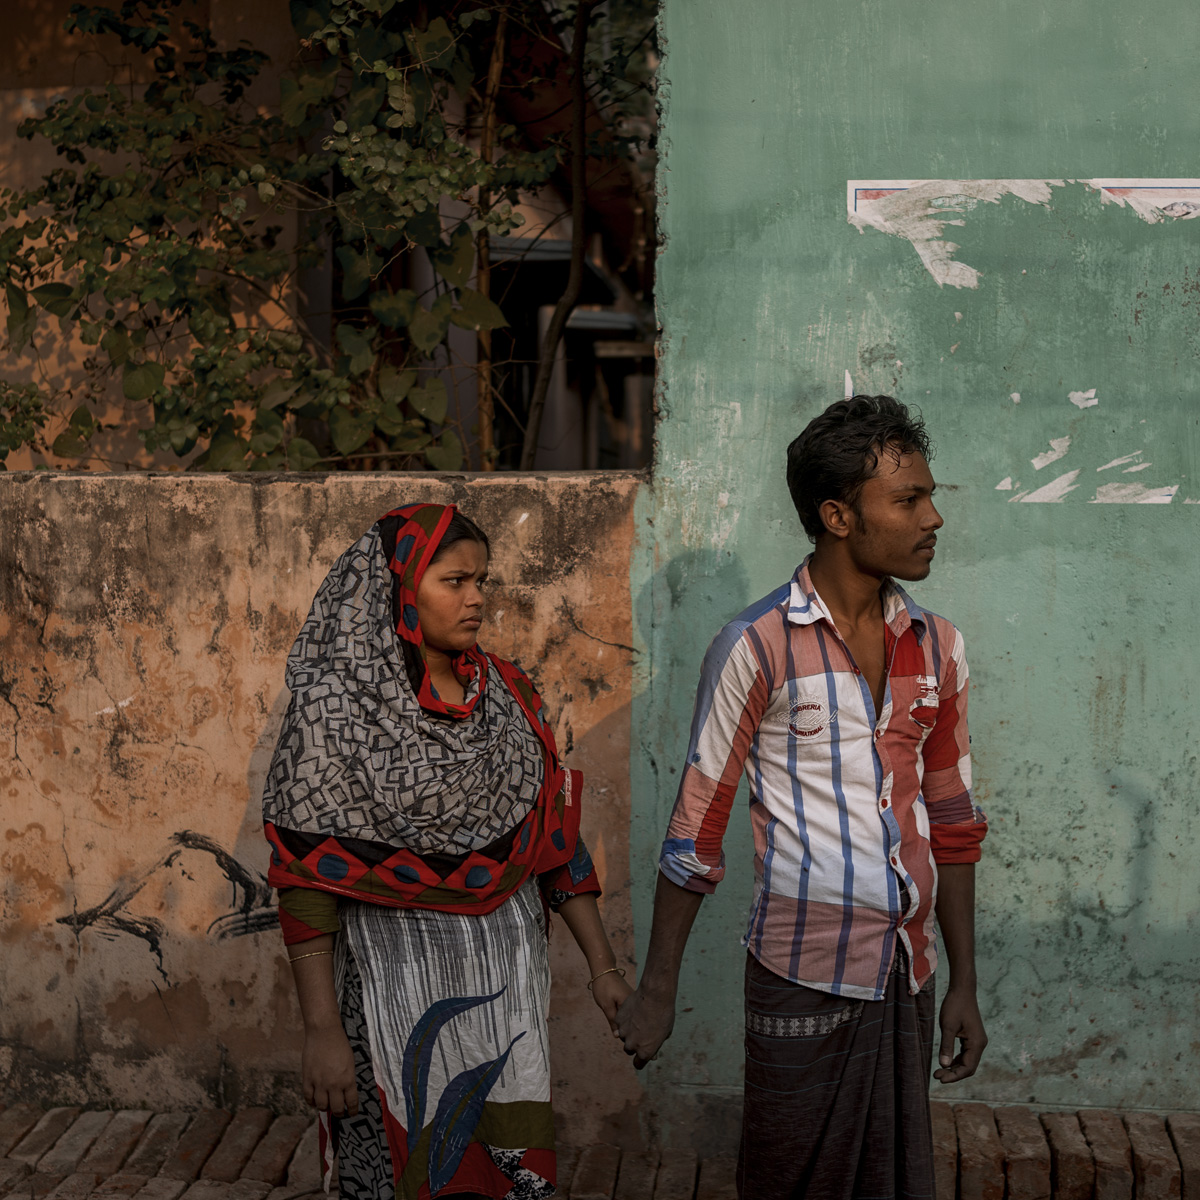 Sheuli AKhter Shila and her husband Mohammad Alamin. Sheuli was worker of Rana Plaza.